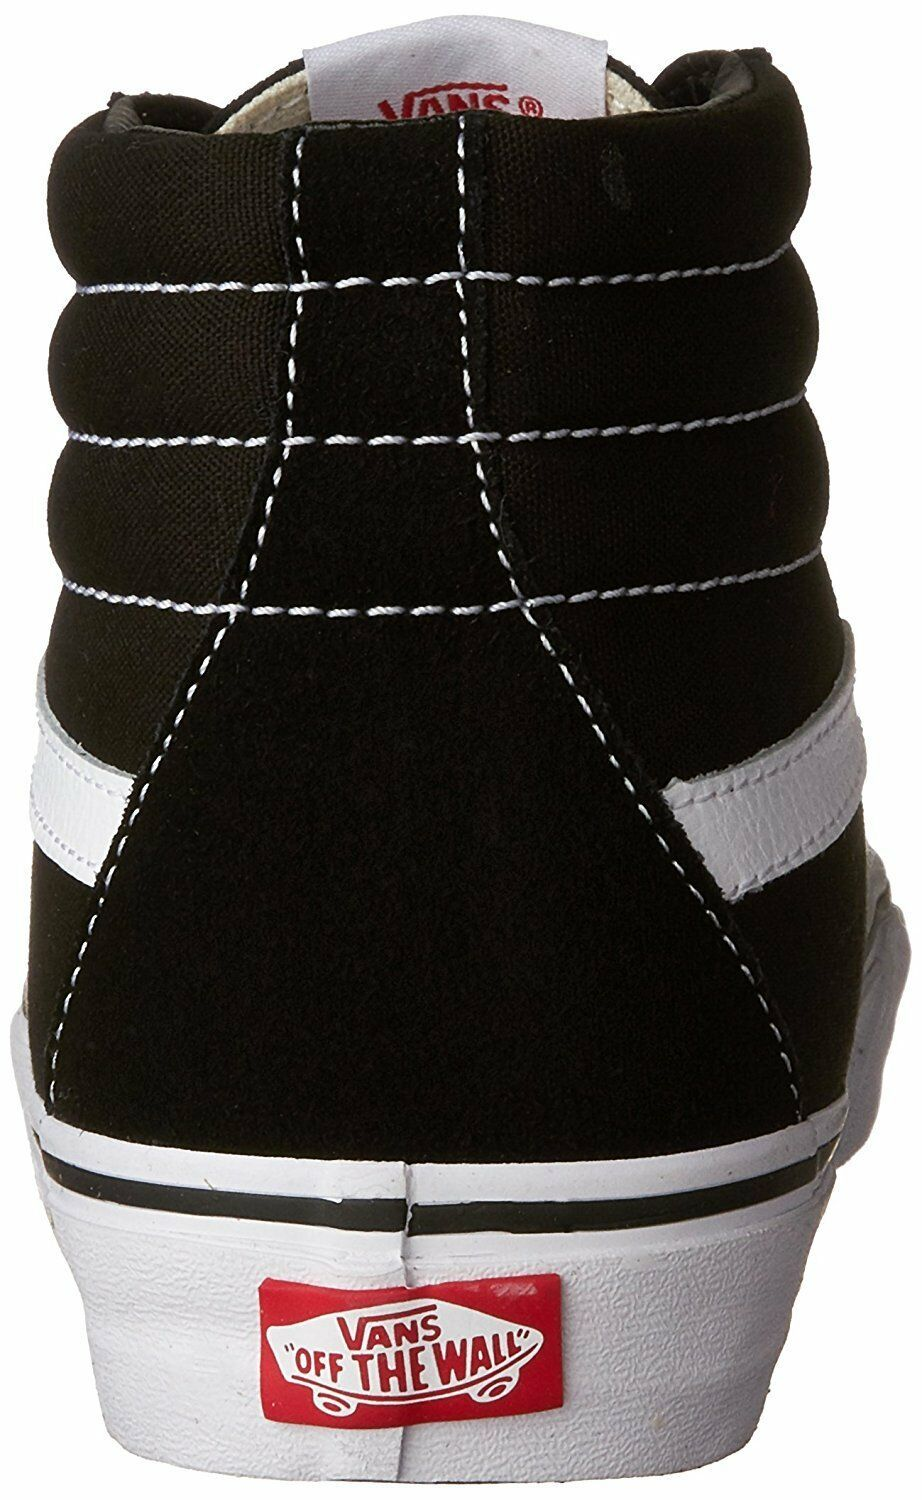 Vans Sk8-Hi Unisex Casual High-Top Skate Shoes, Comfortable and Durable in